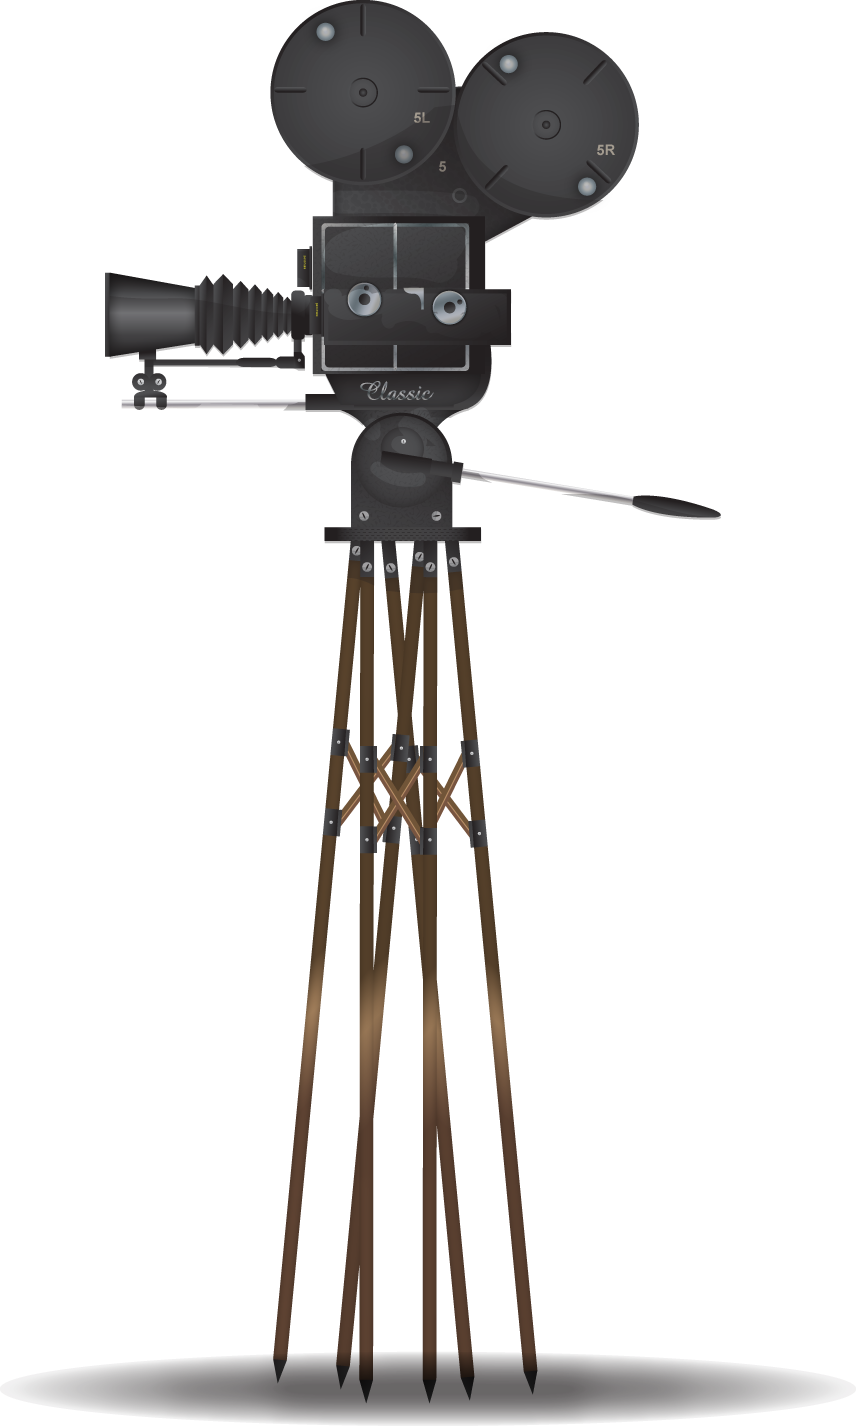 Hollywood clipart vintage video camera. Movie vectors pinterest and